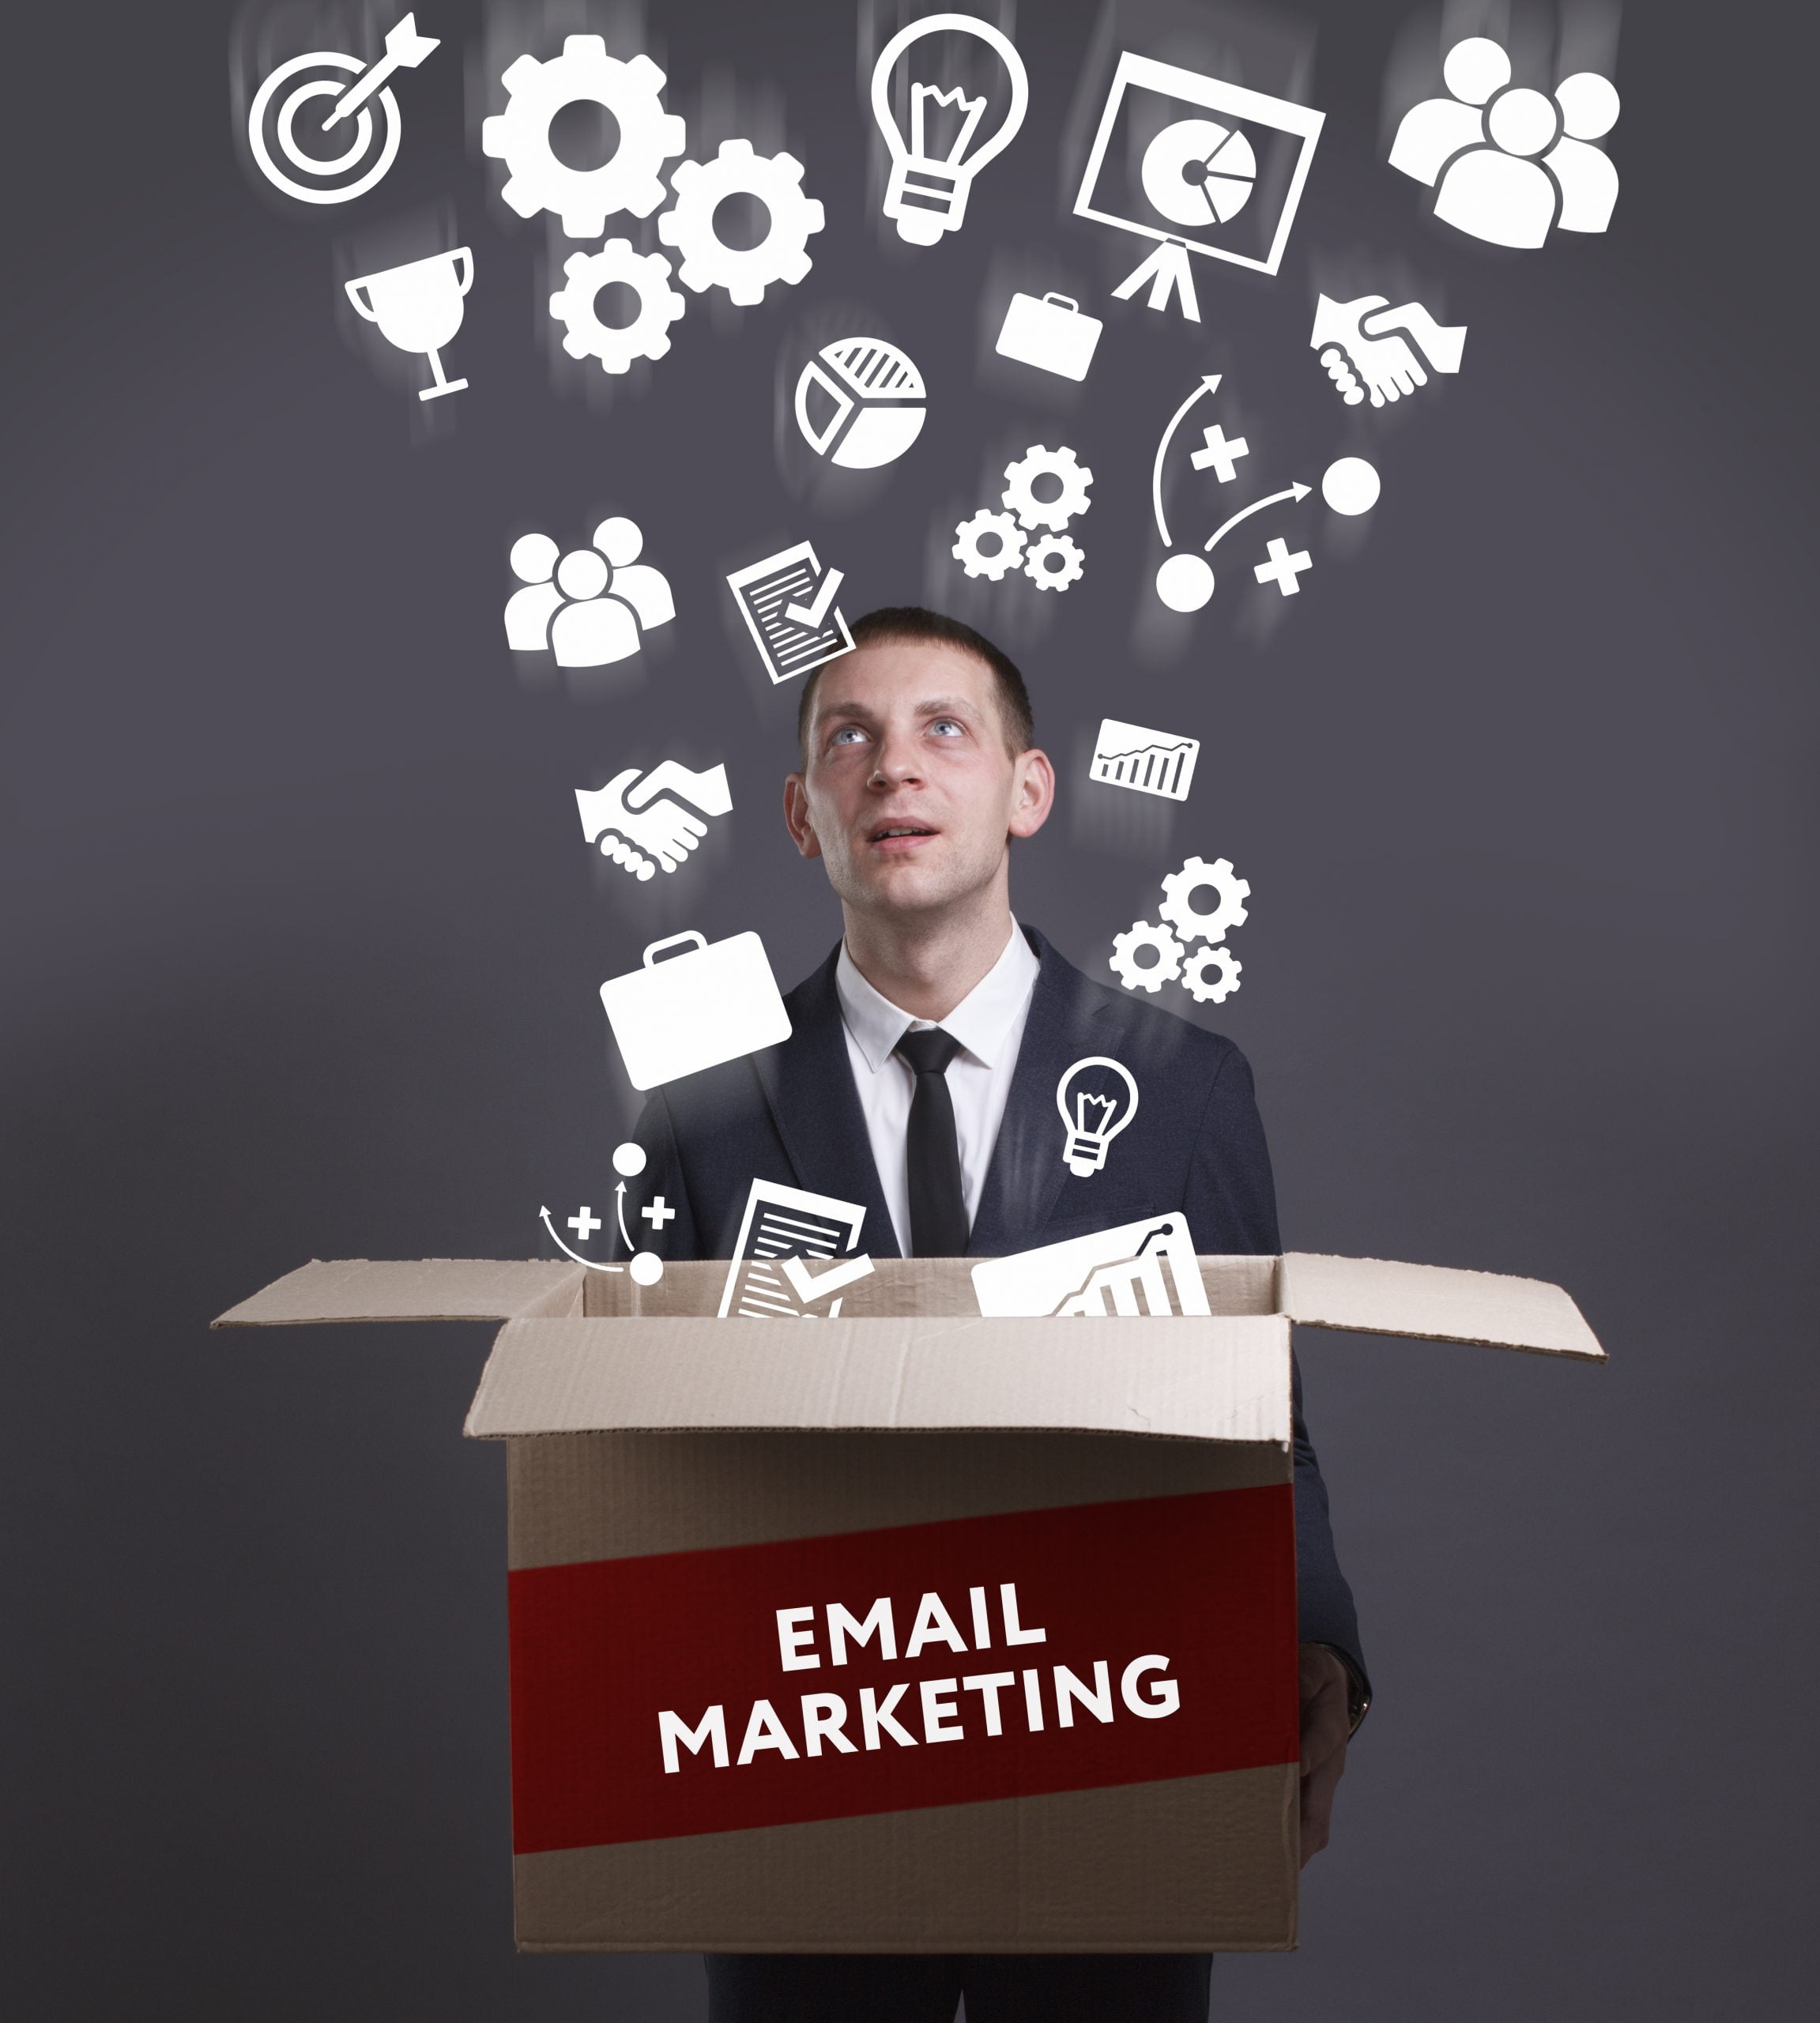 email marketing for lawyers and law firms